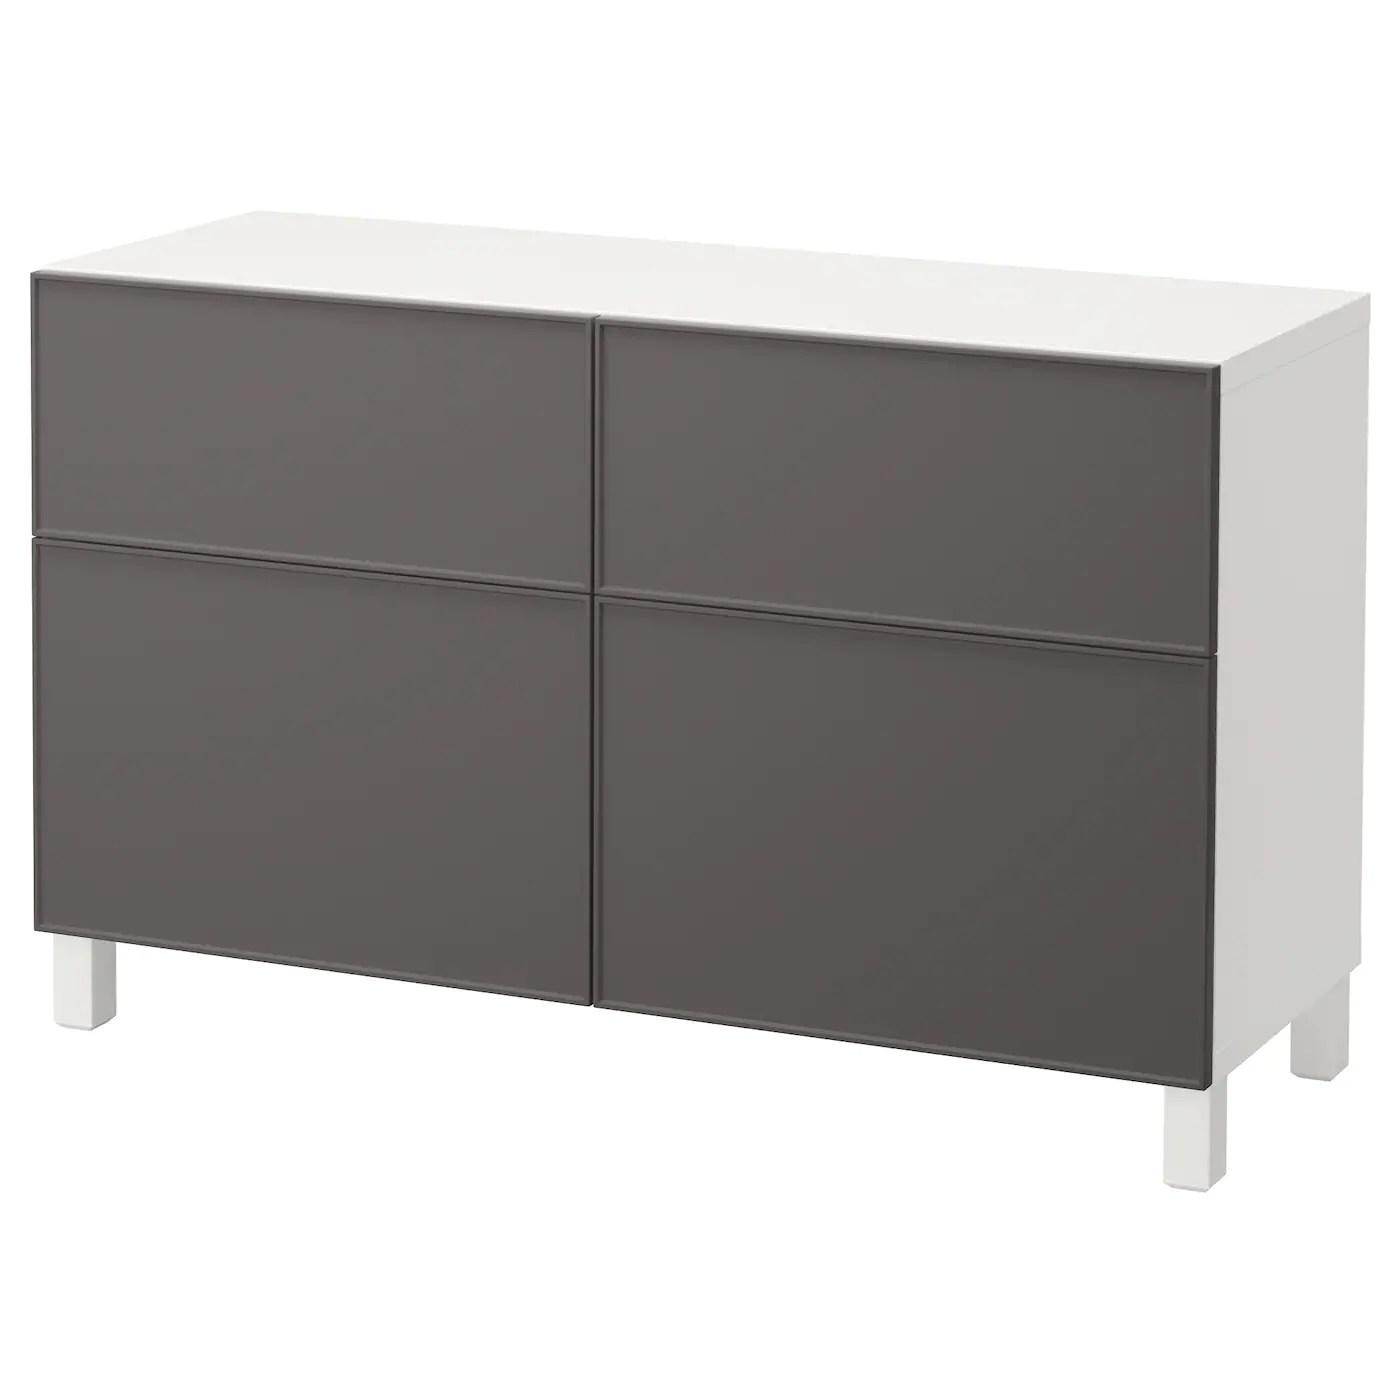 Ikea Kommode 60 X 120 BestÅ Storage Combination W Doors Drawers White Grundsviken Dark Grey